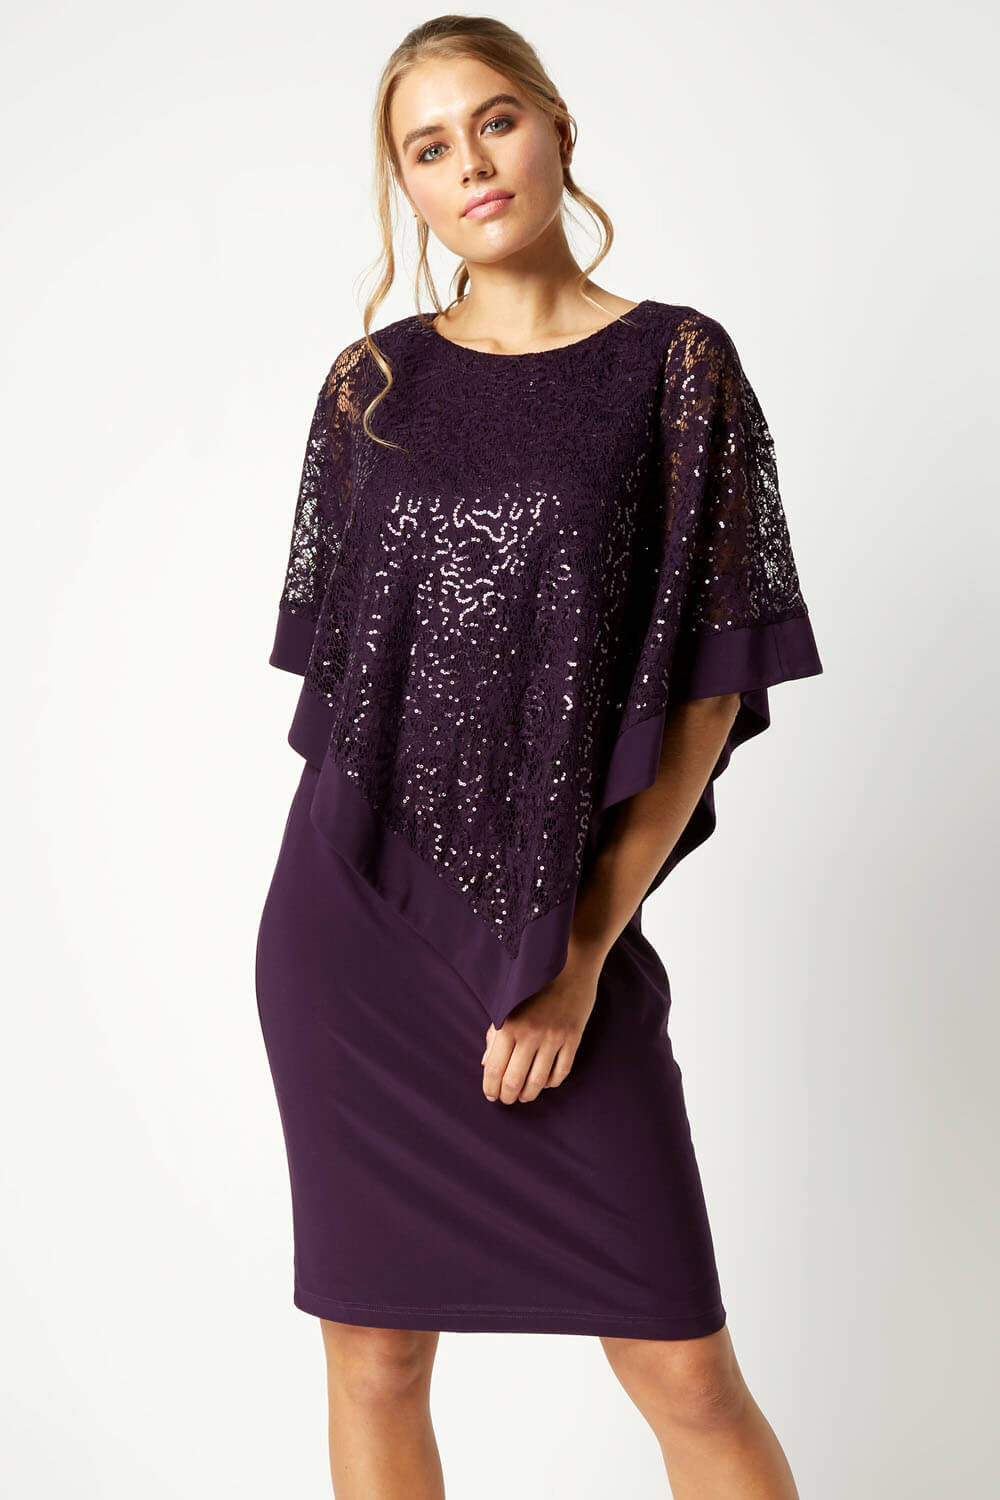 Roman-Originals-Women-039-s-Sequin-Lace-Boat-Neck-Overlay-Knee-Length-Dress thumbnail 19